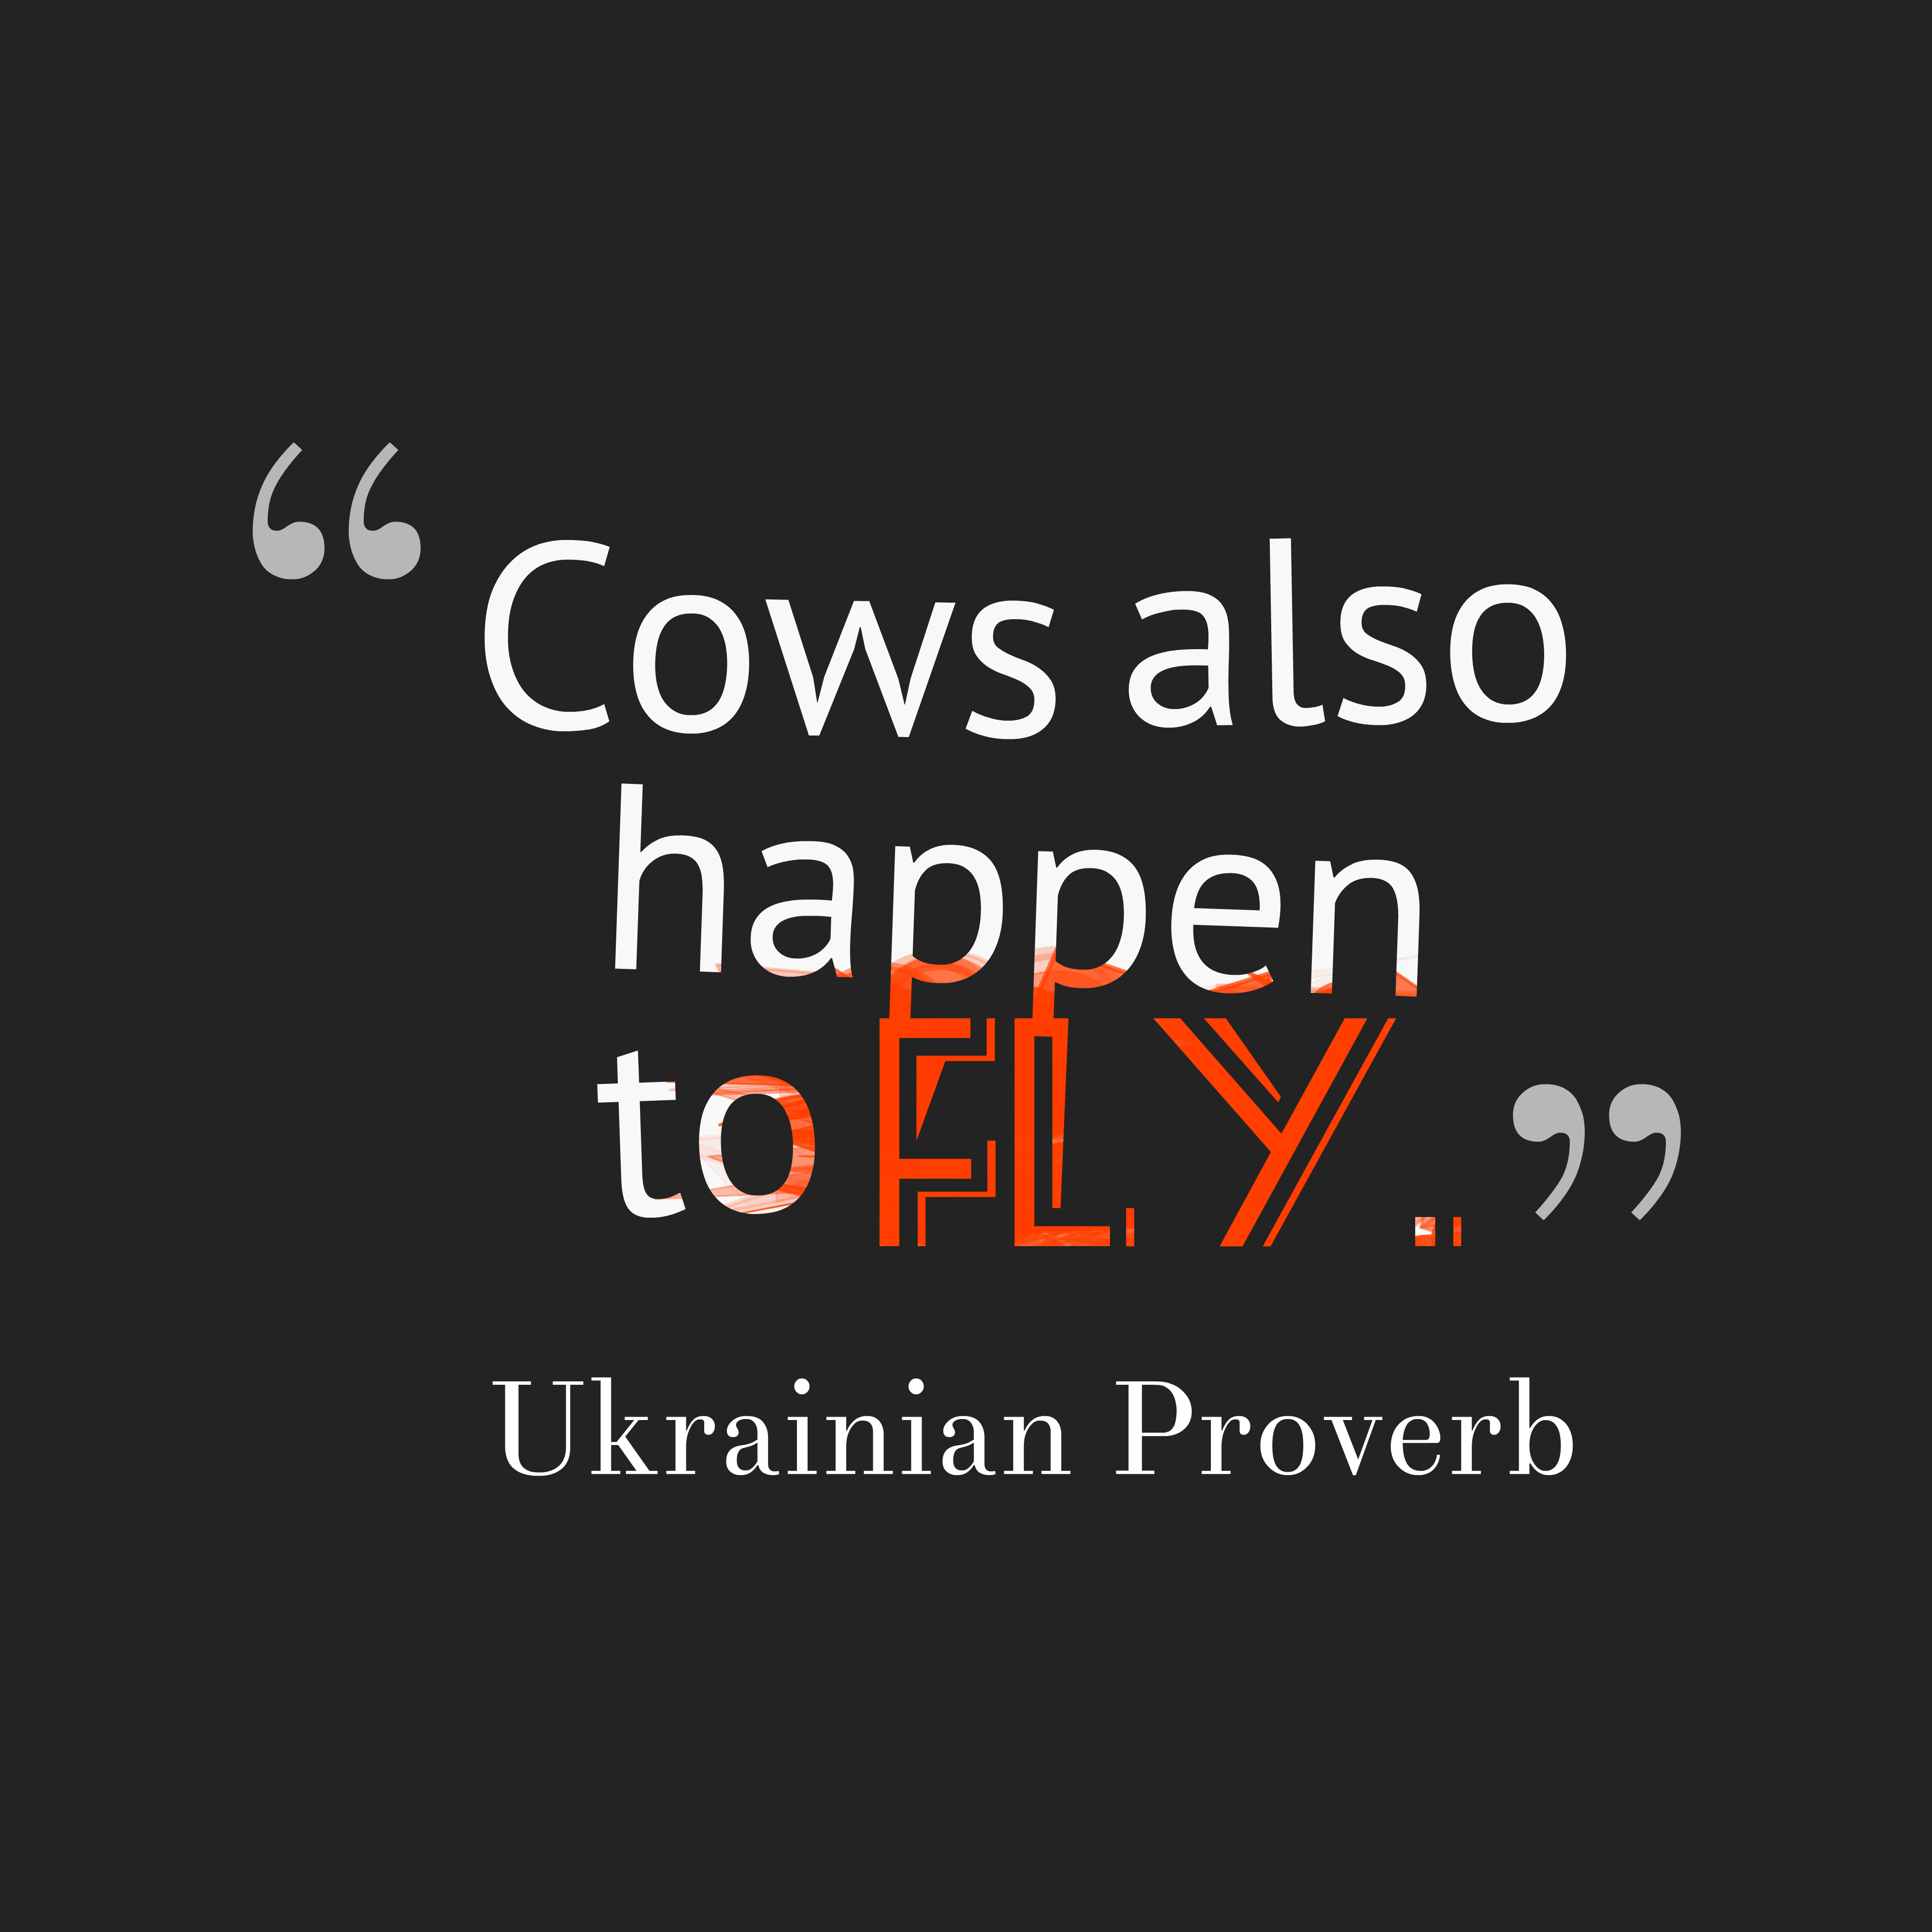 Quotes image of Cows also happen to fly.